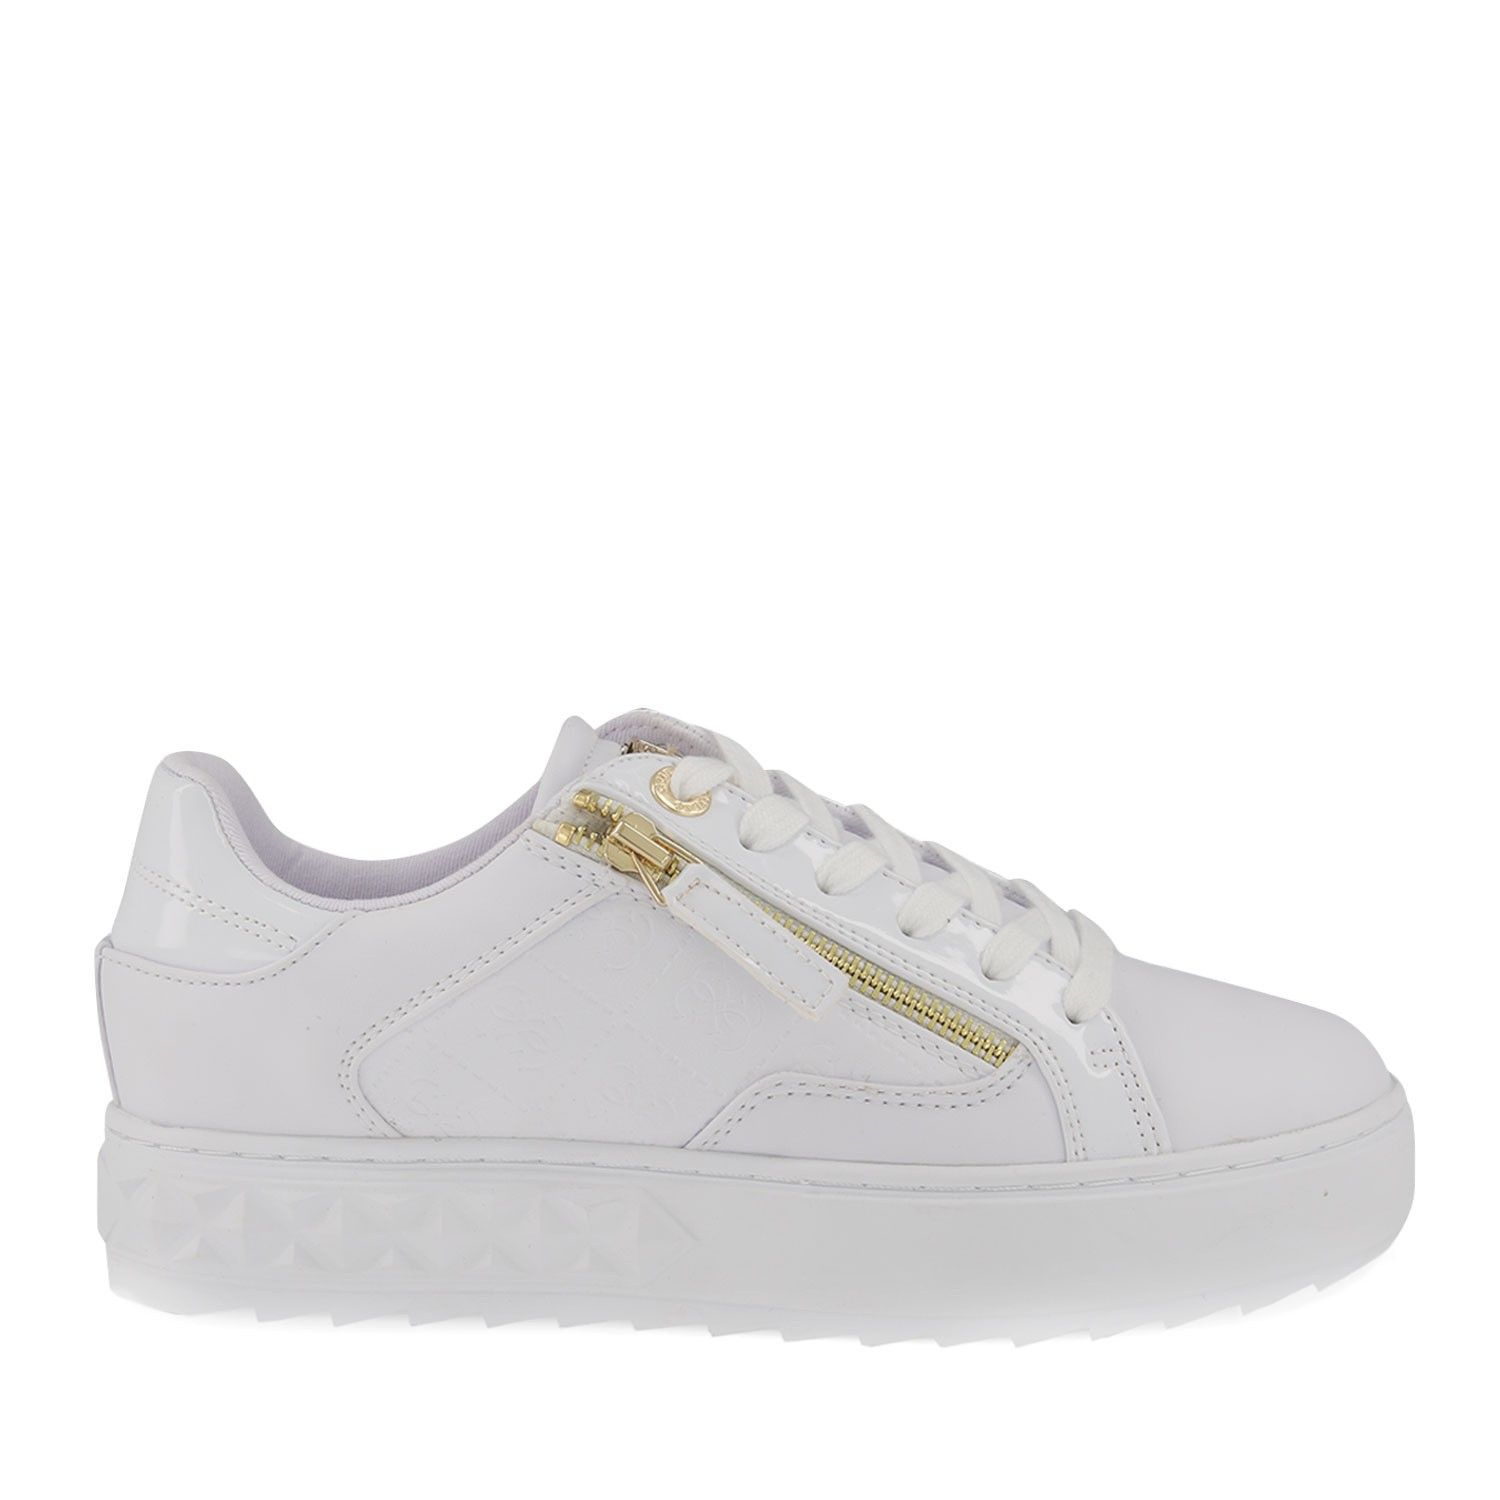 Guess FL6FIIFAL12 womens sneakers white